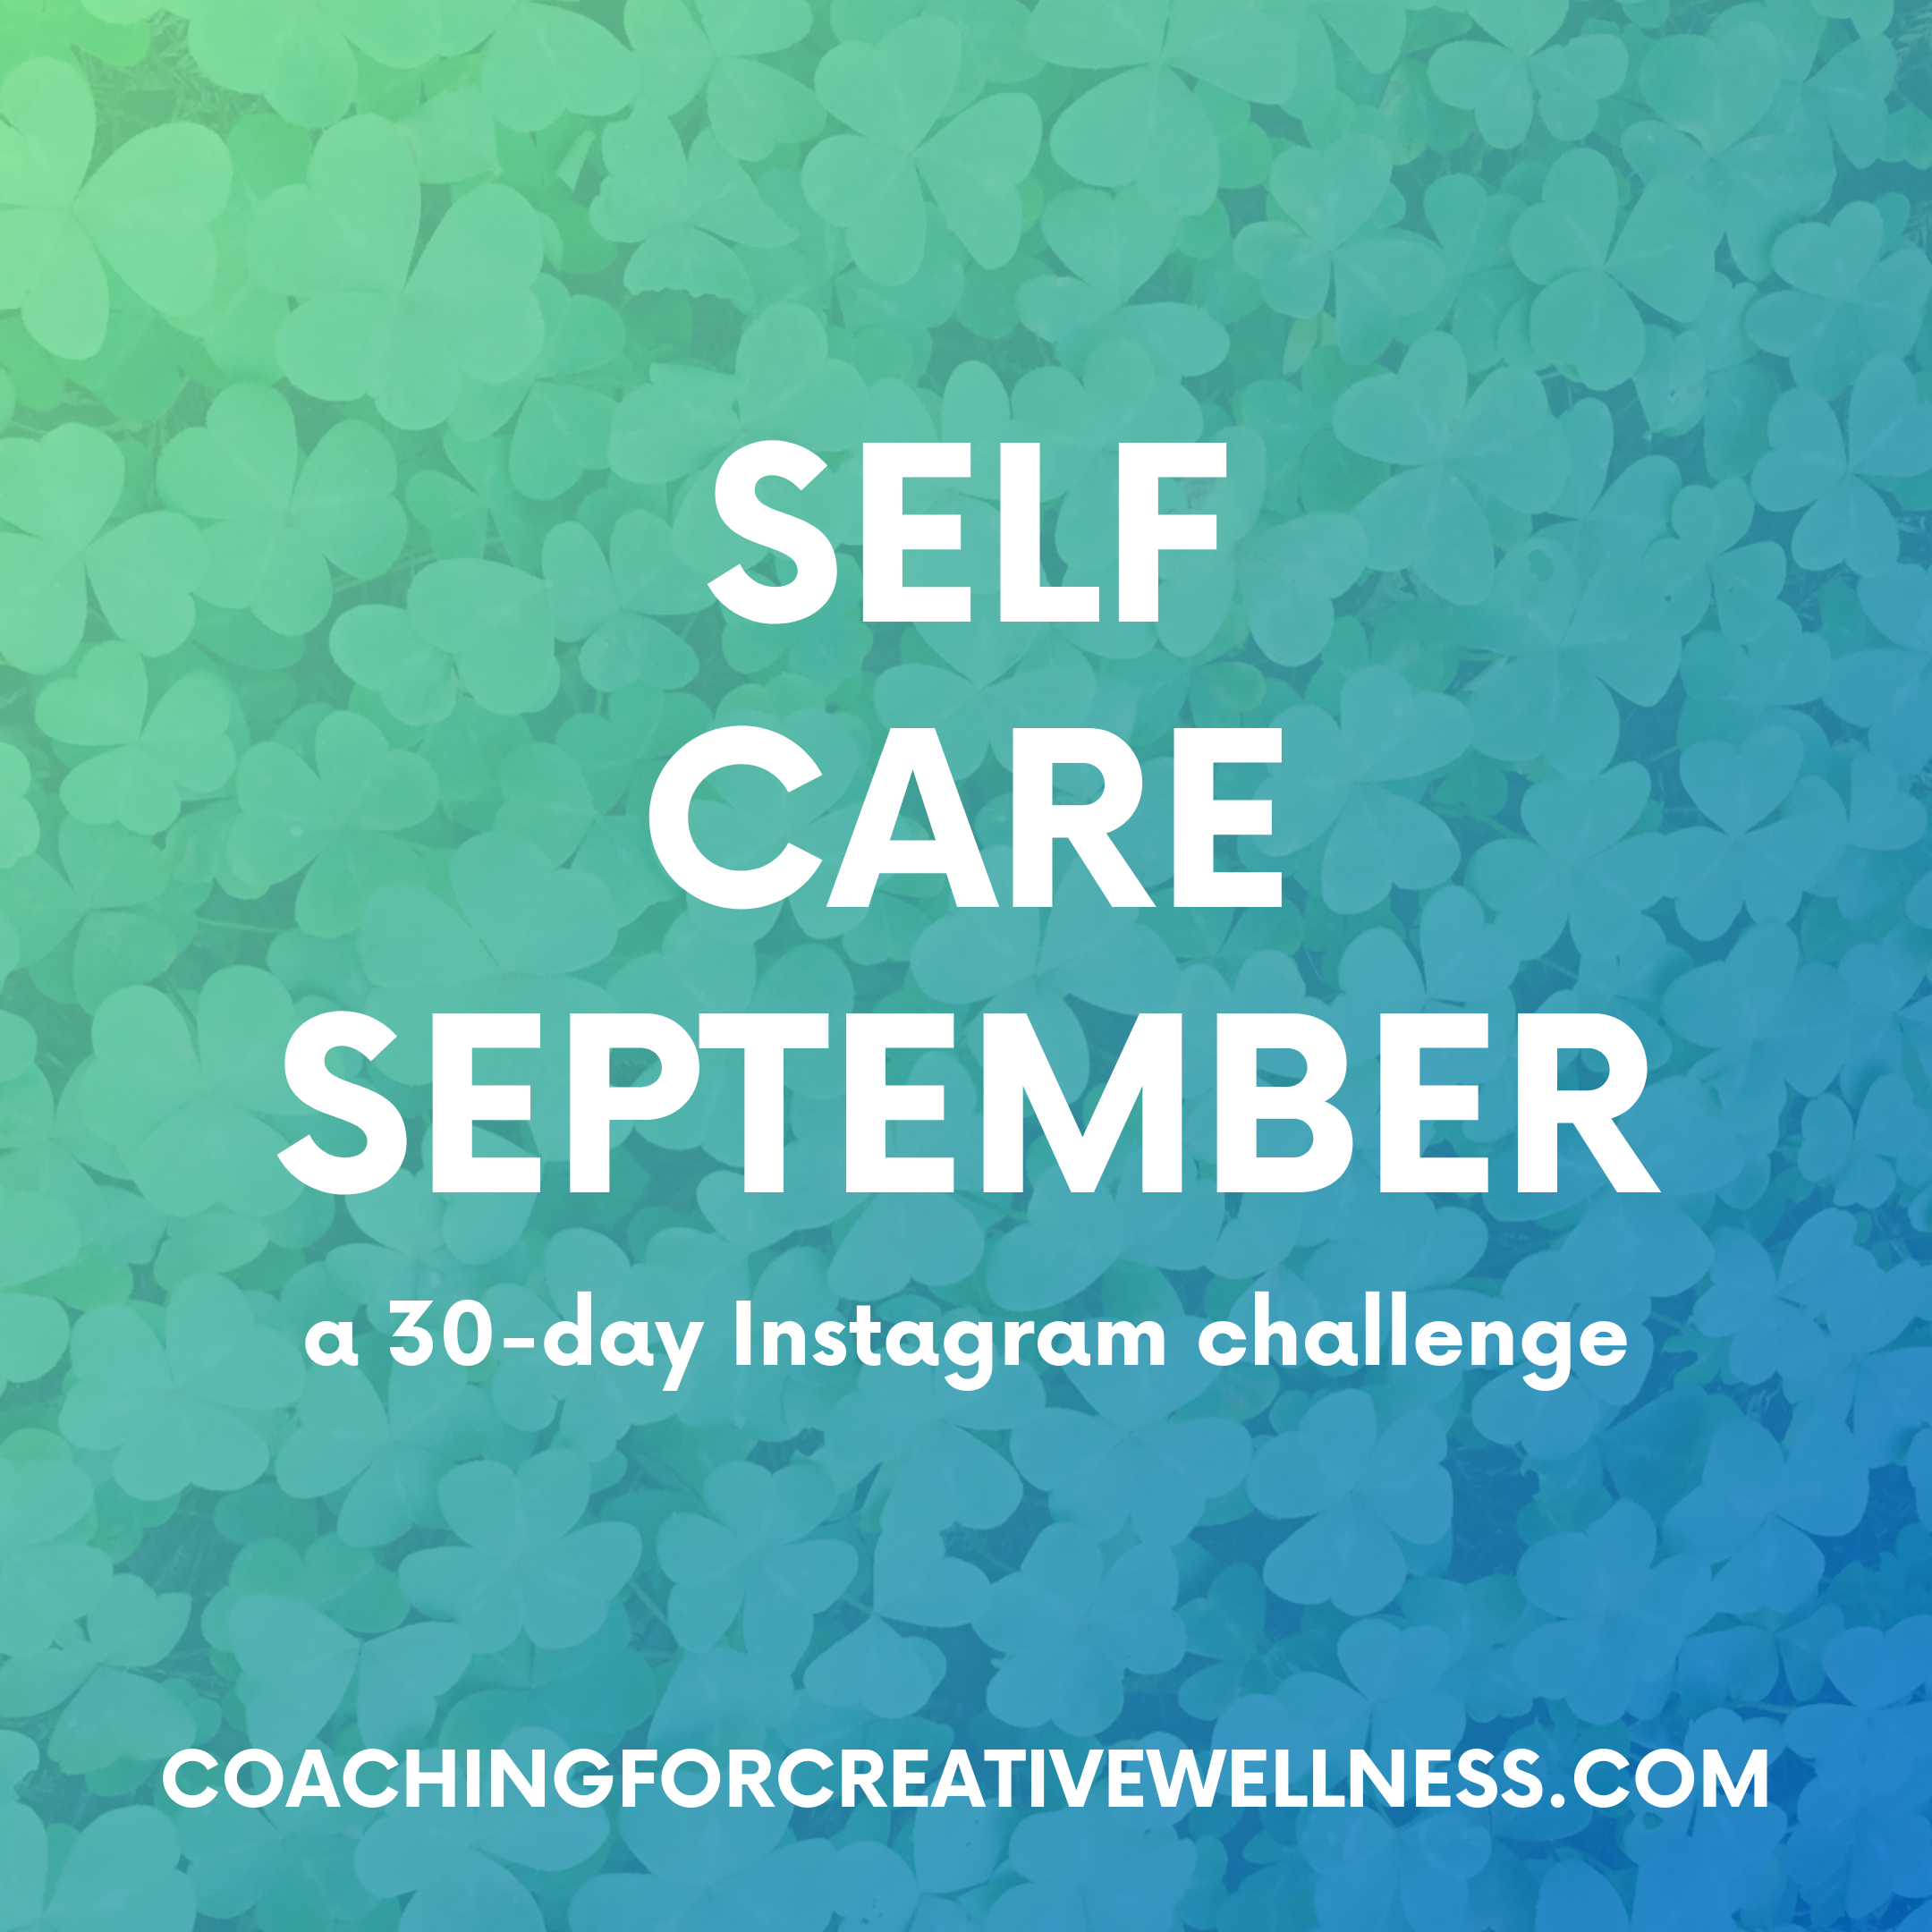 Coaching-for-Creative-Wellness-Self-Care-September.png